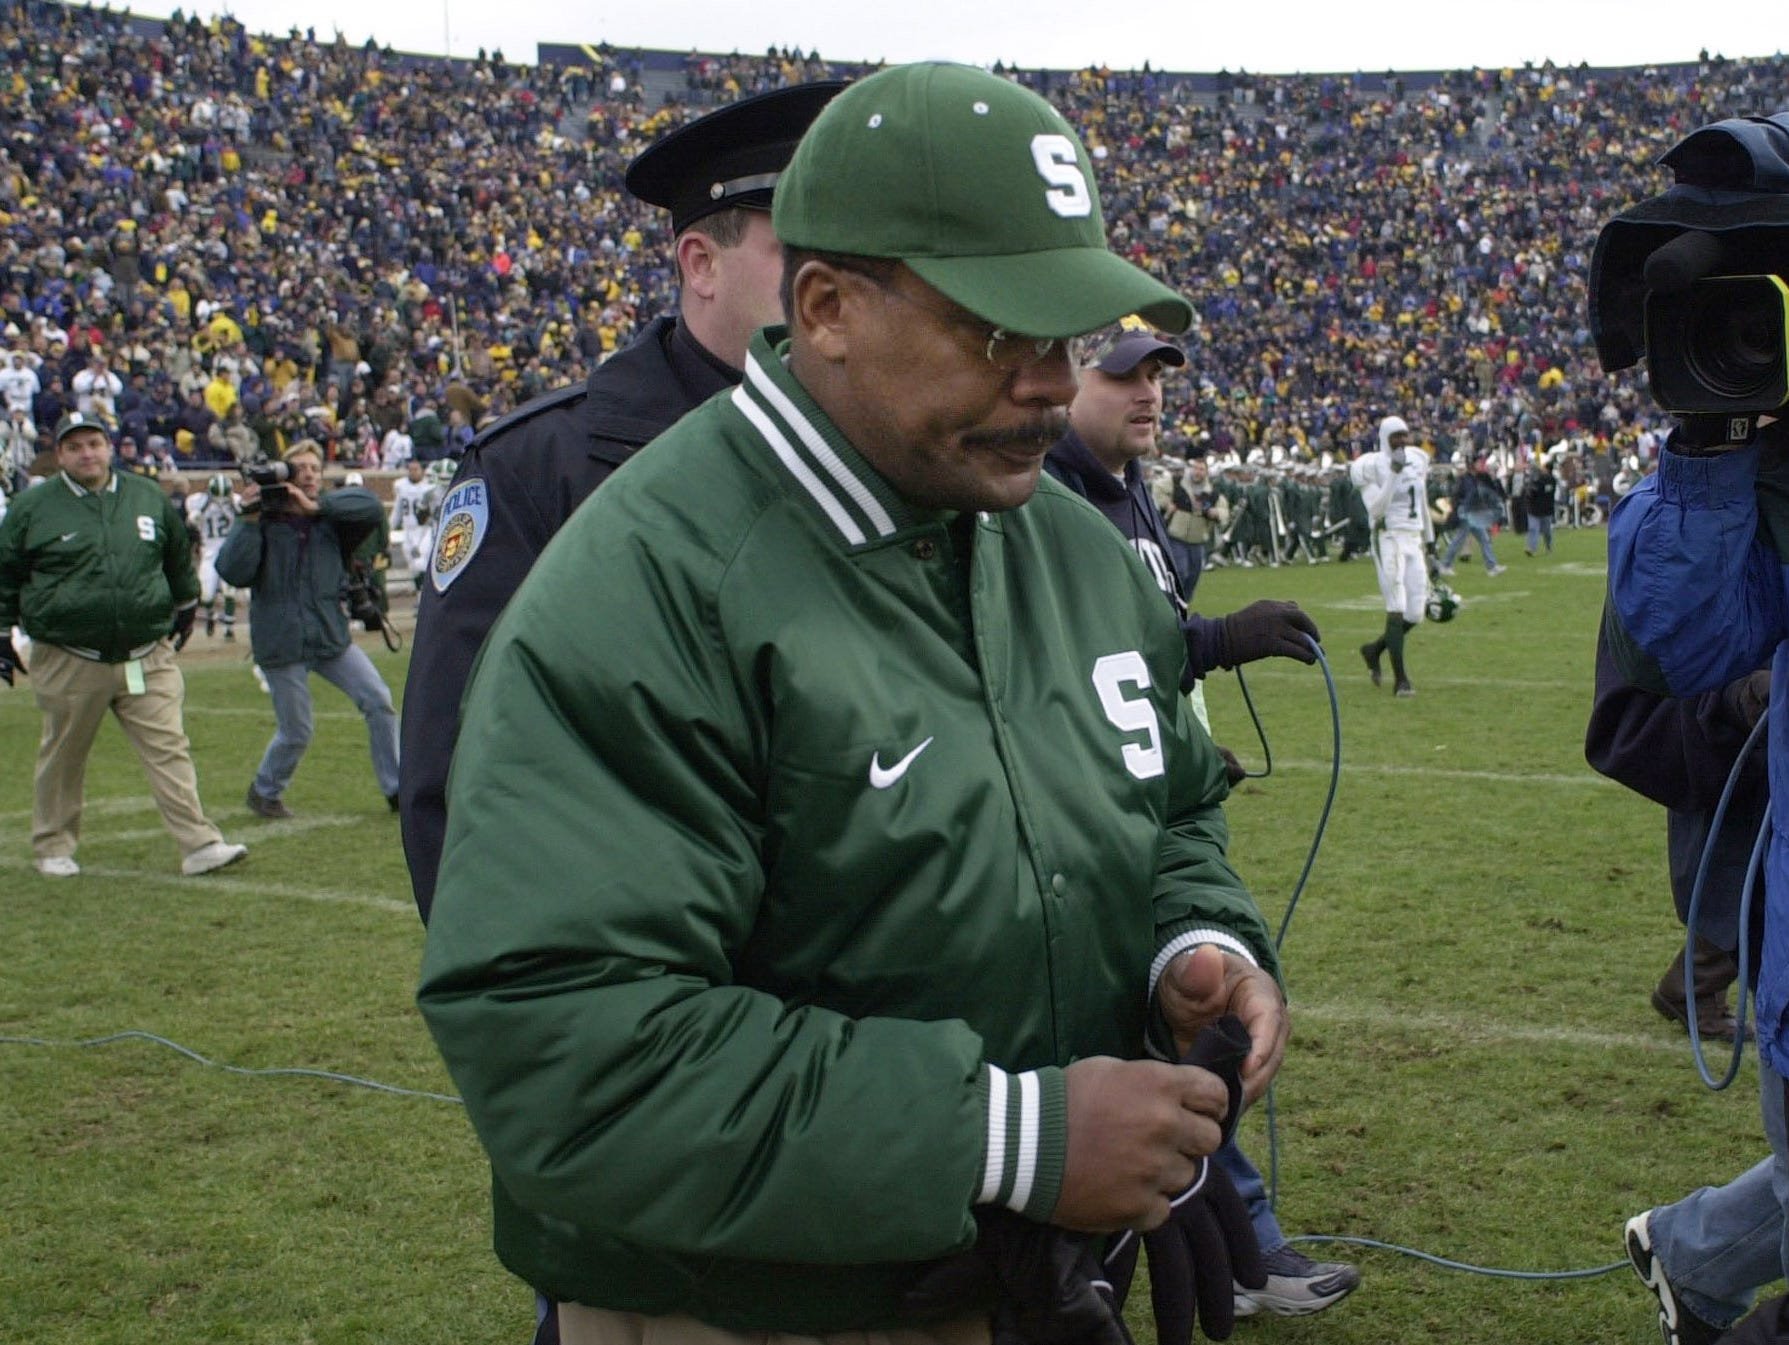 Michigan State coach Bobby Williams walks to midfield to meet Michigan head coach Lloyd Carr after Michigan State's 49-3 loss on Nov. 2, 2002 in Ann Arbor. Williams was fired on Nov. 4, 2002, two days after the Spartans dropped to 3-6 with their worst loss in 55 years.